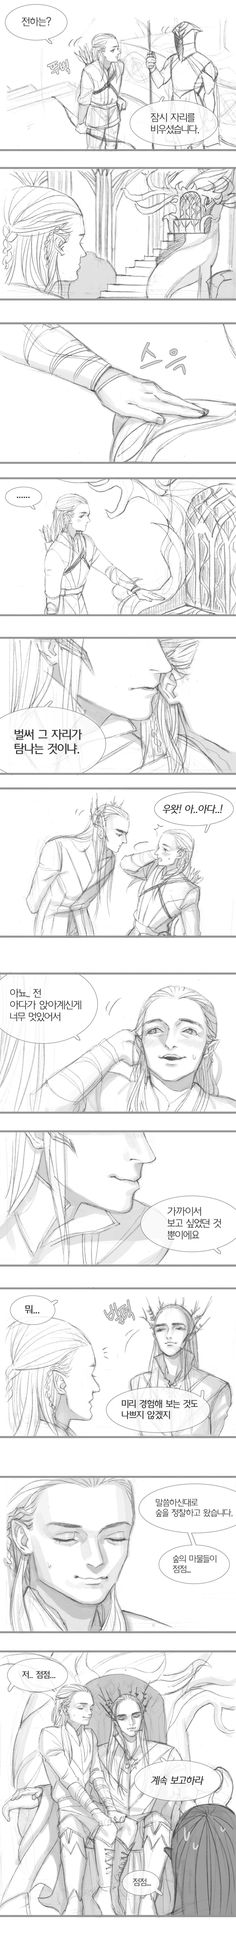 """Translation: Legolas enters and asks a guard, """"Where is the king?"""" Guard: """"He has stepped out for a minute."""" As Legolas touches the throne, Thranduil is suddenly there and says, """"Already coveting the throne?"""" Nervous Legolas states, """"Ada! No. I just...thought how magnificent you look when you are sitting on it. I just wanted to see it close."""" Thranduil replies, """"I guess...it won't hurt to experience it beforehand."""" In the next scene, the bubble next to Legolas is spoken by a guard reporting…"""